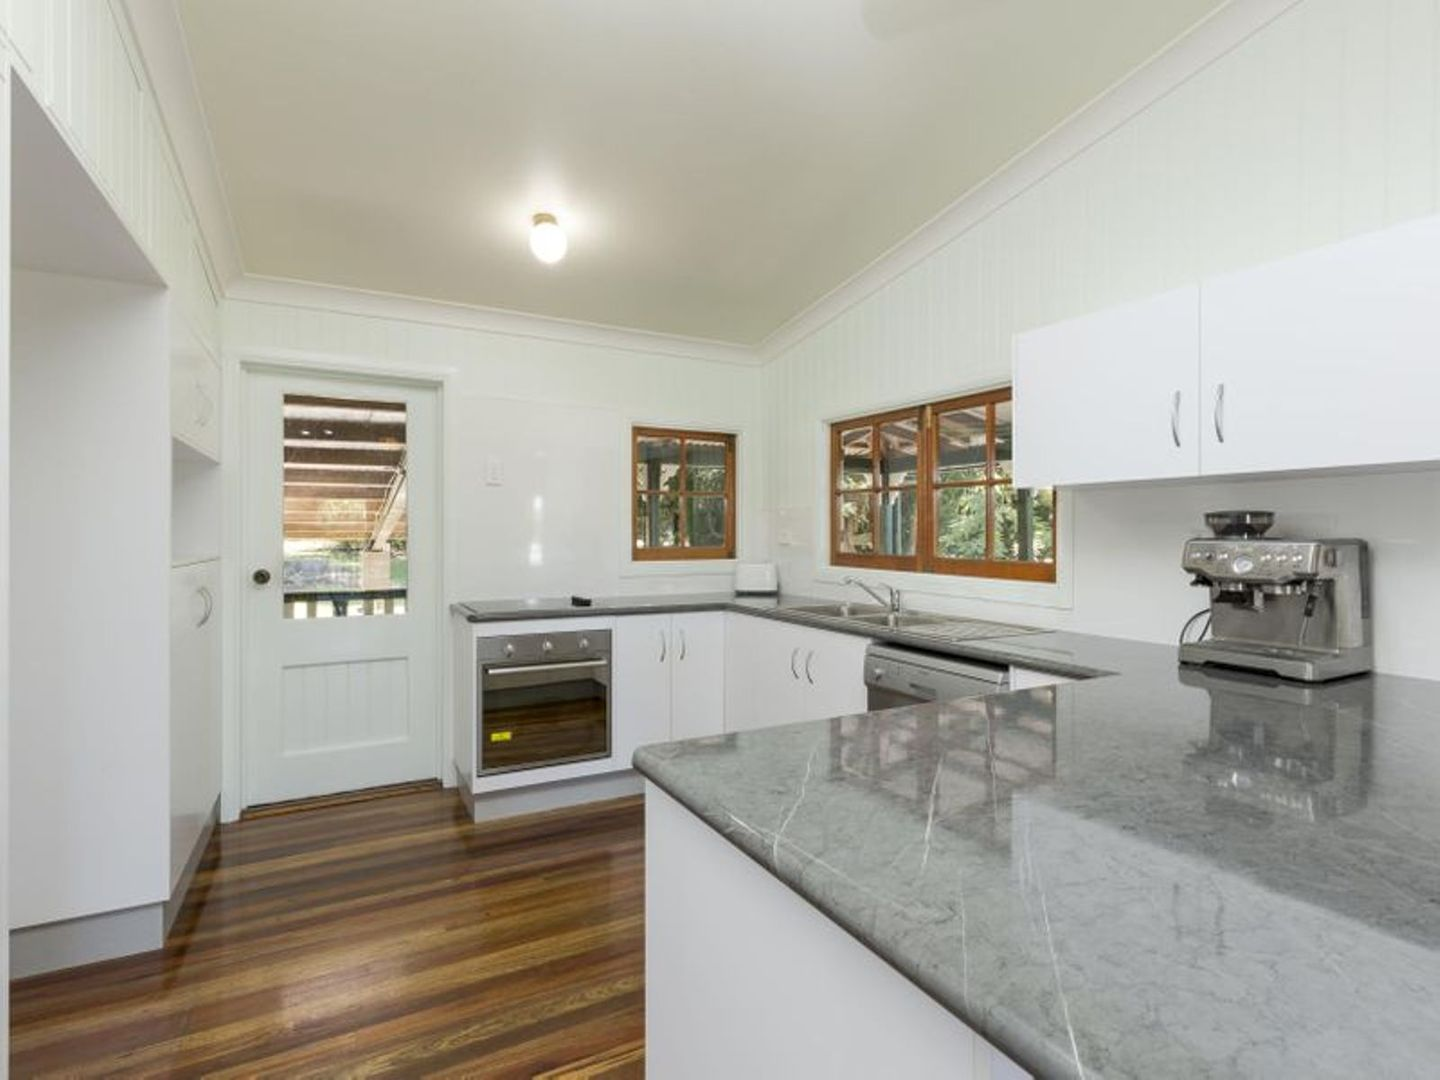 17 ENID Street, Flying Fish Point QLD 4860, Image 1